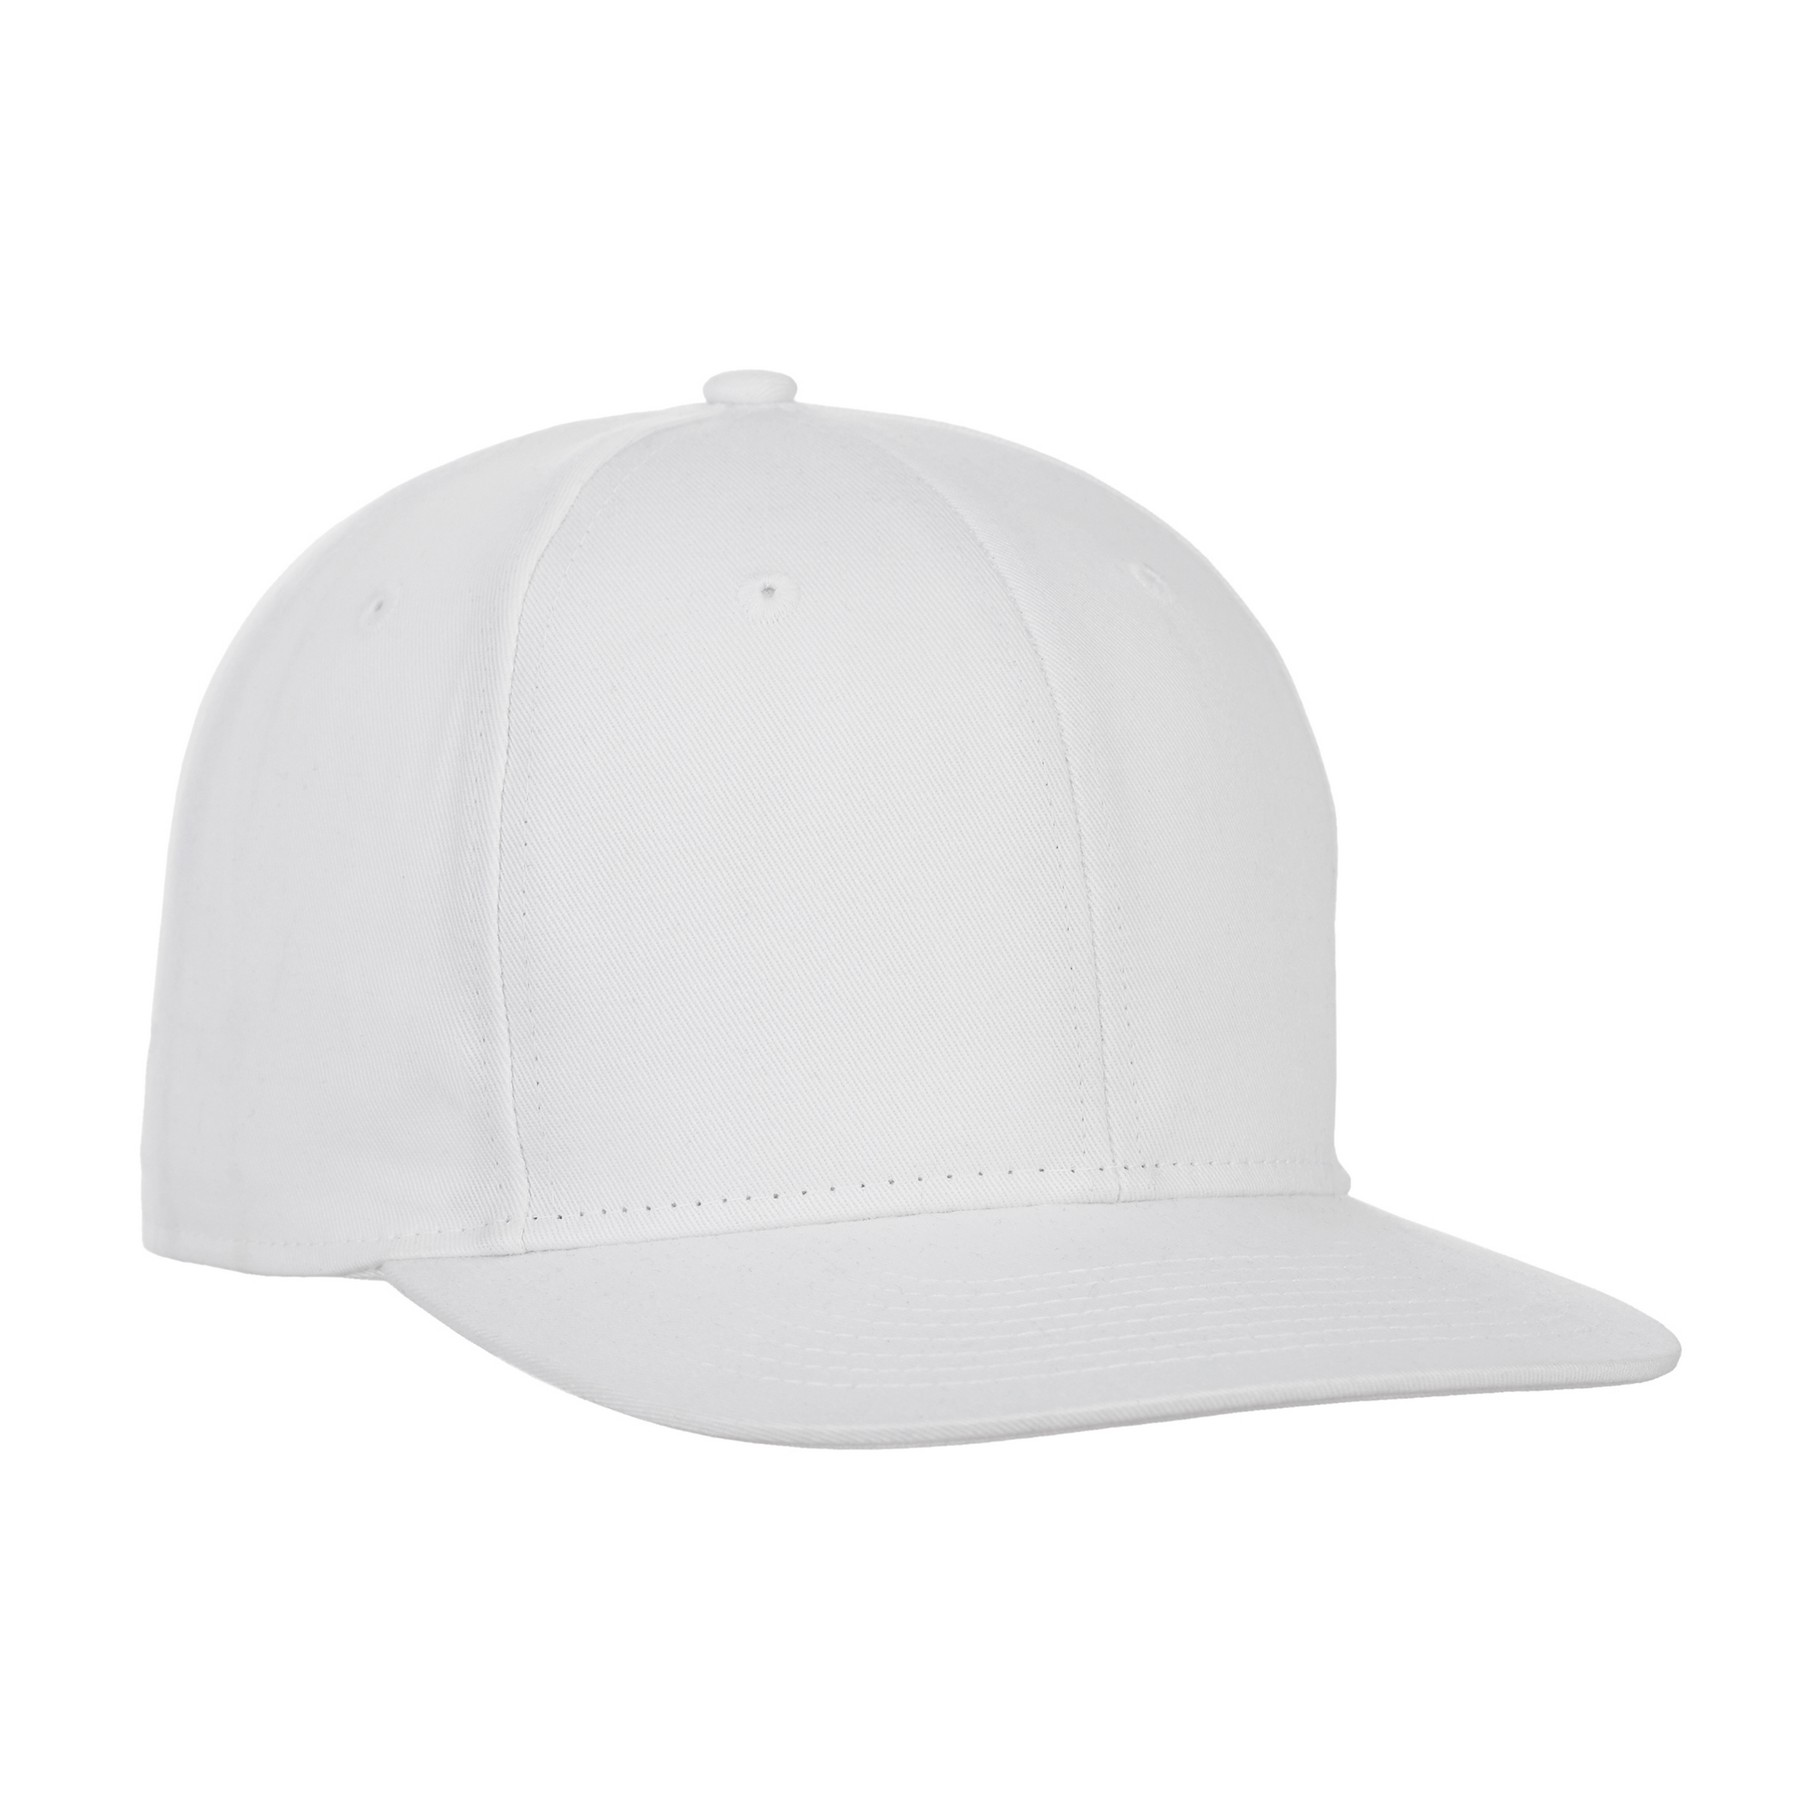 Forte Ballcap, #32025 - Embroidered